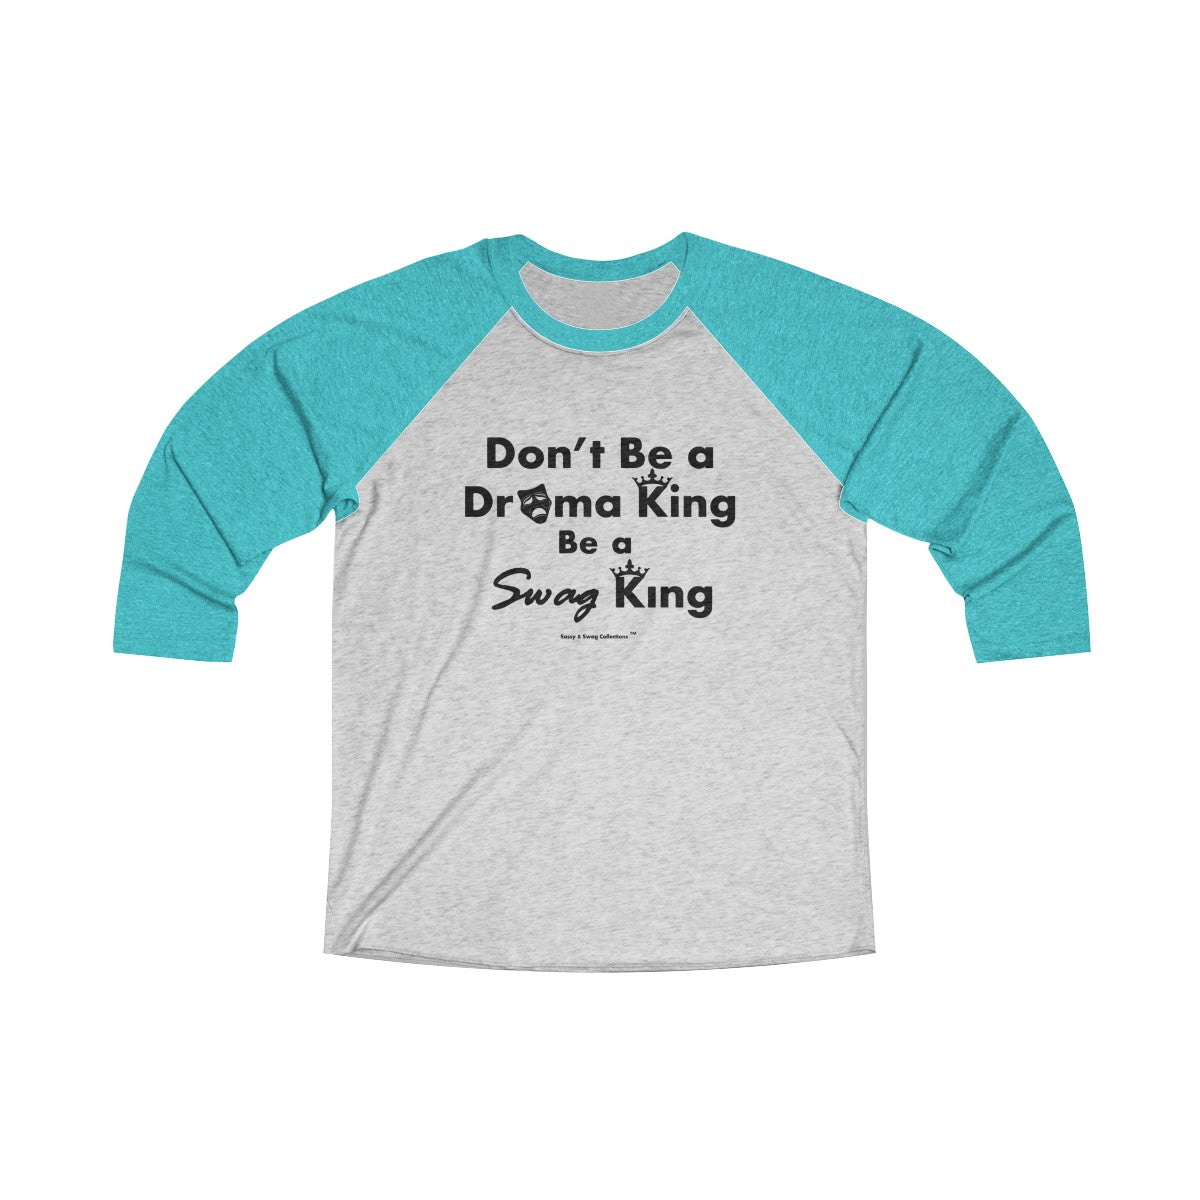 Sassy & Swag Collections - Don't Be a Drama King Be a Swag King Tri-Blend 3/4 Raglan Tee